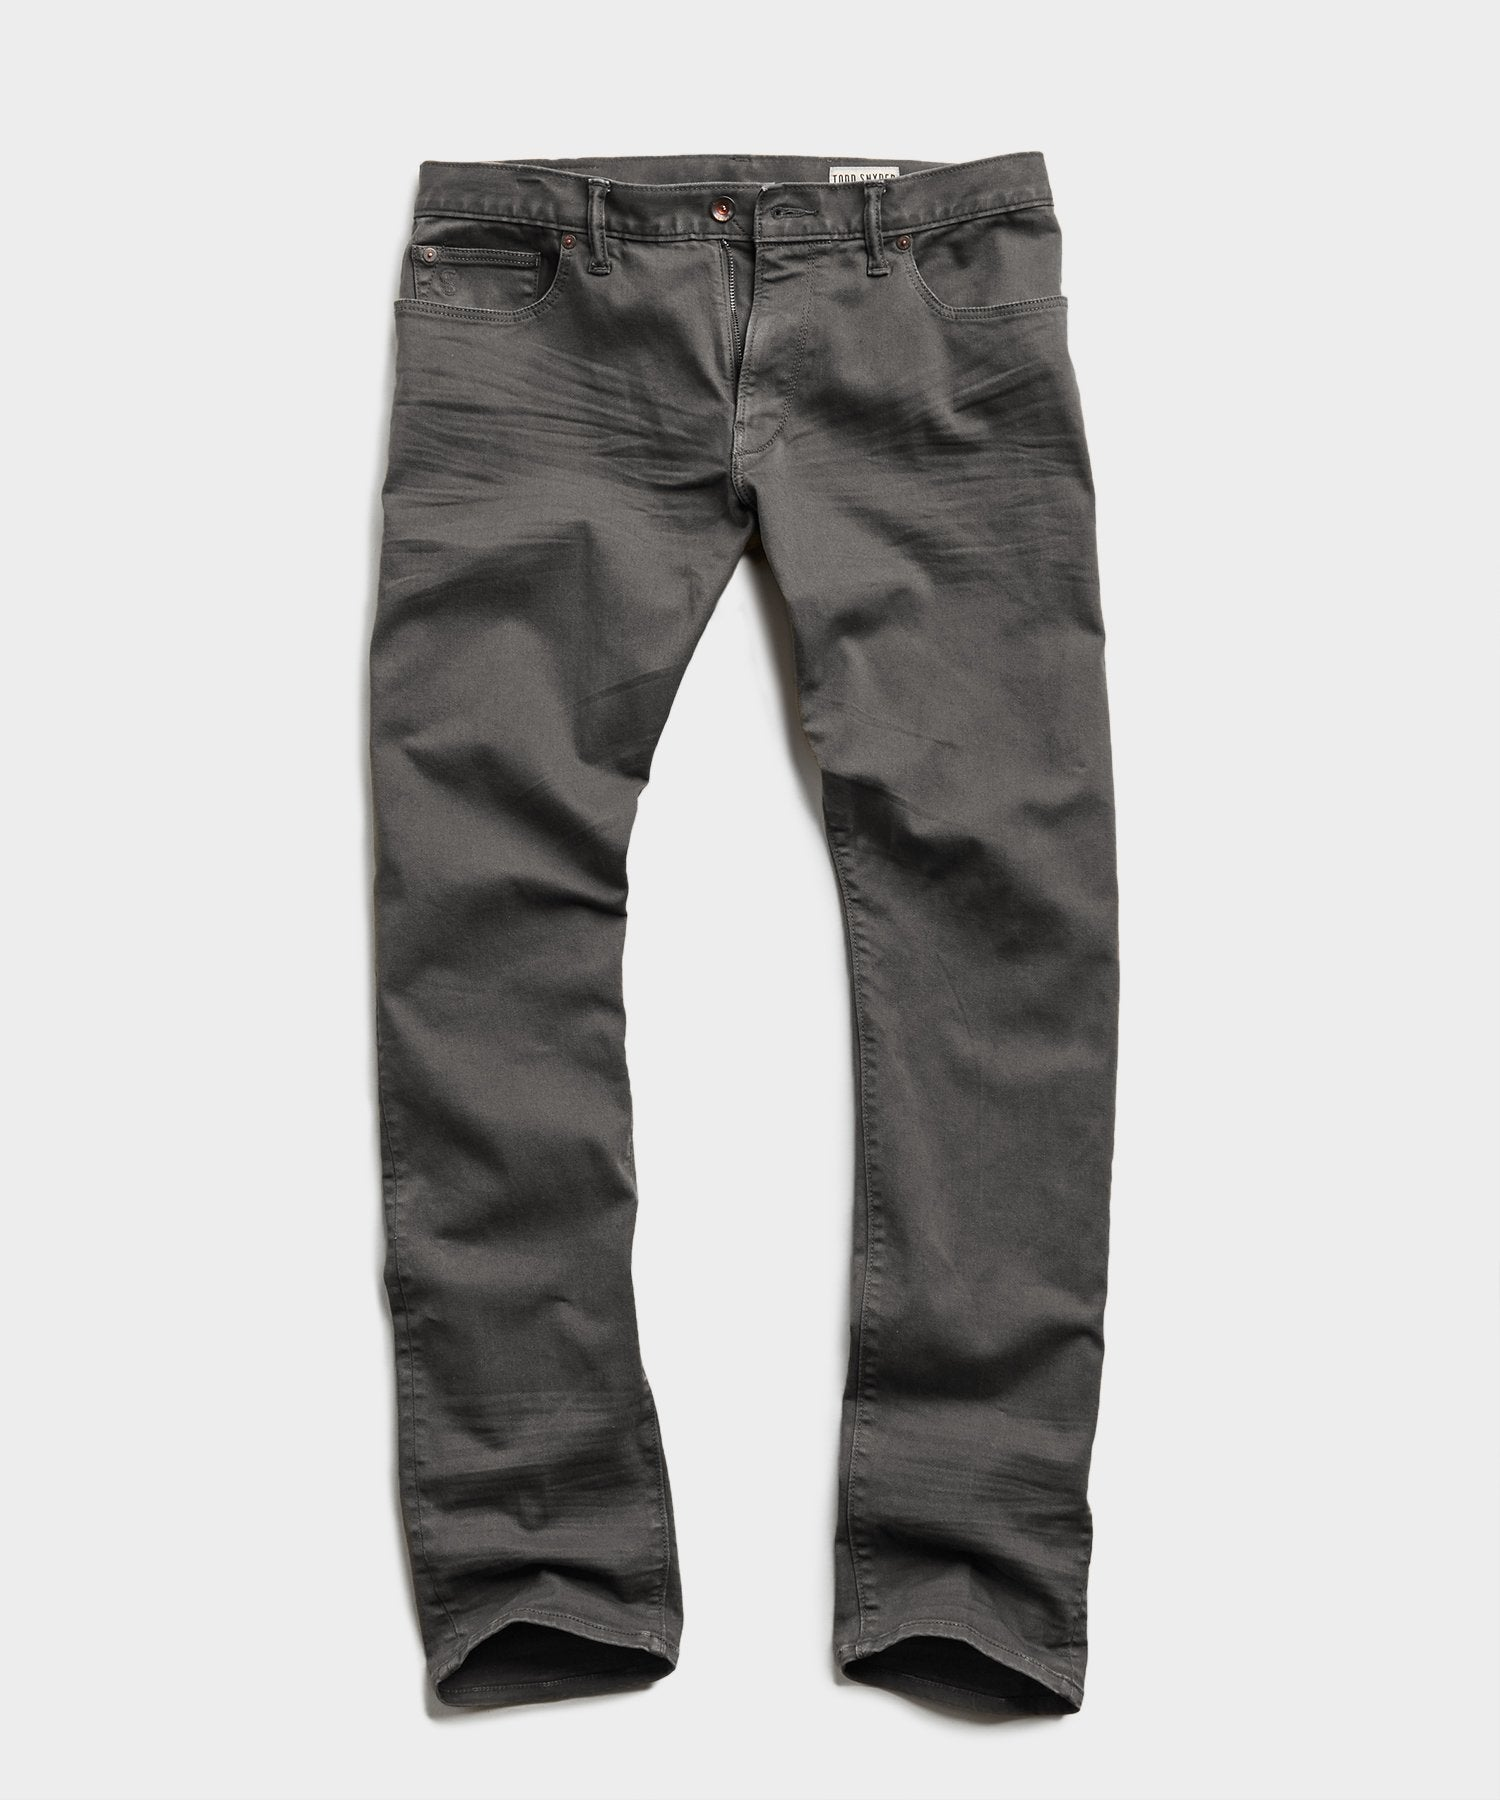 STRAIGHT FIT 5-POCKET CHINO IN DARK GRANITE